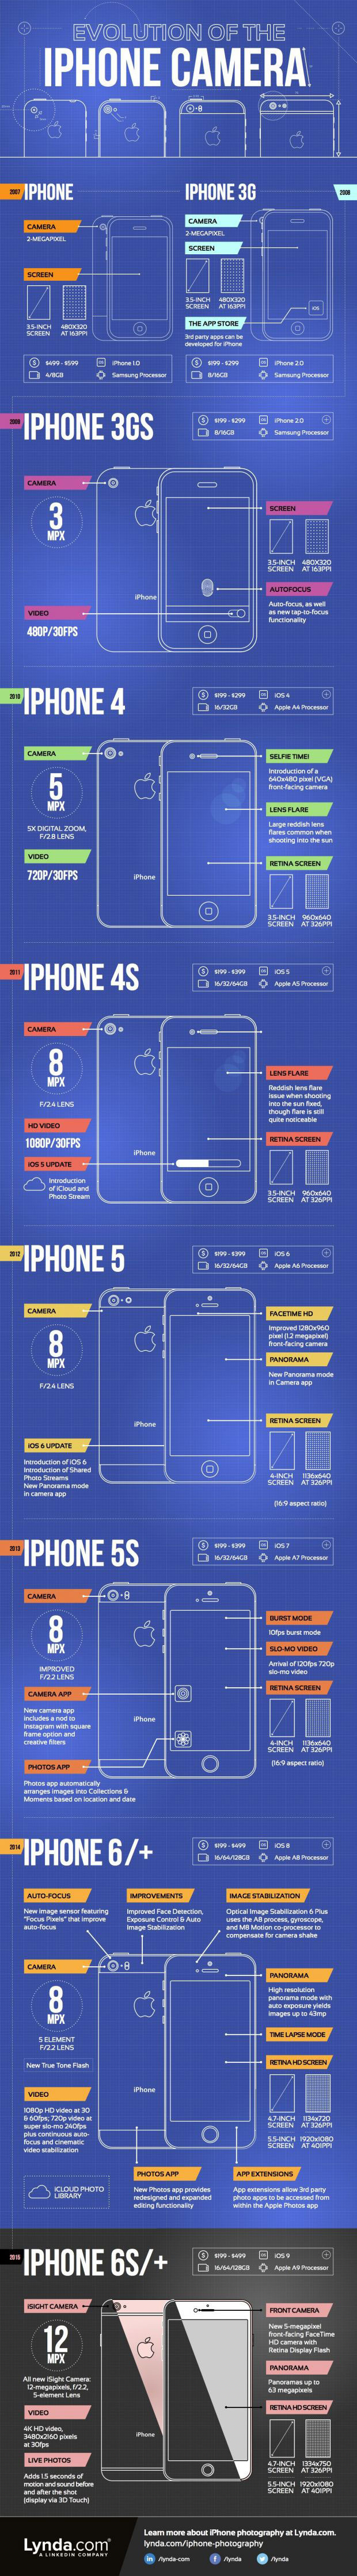 iphone 4 camera specs chat atmosfera free